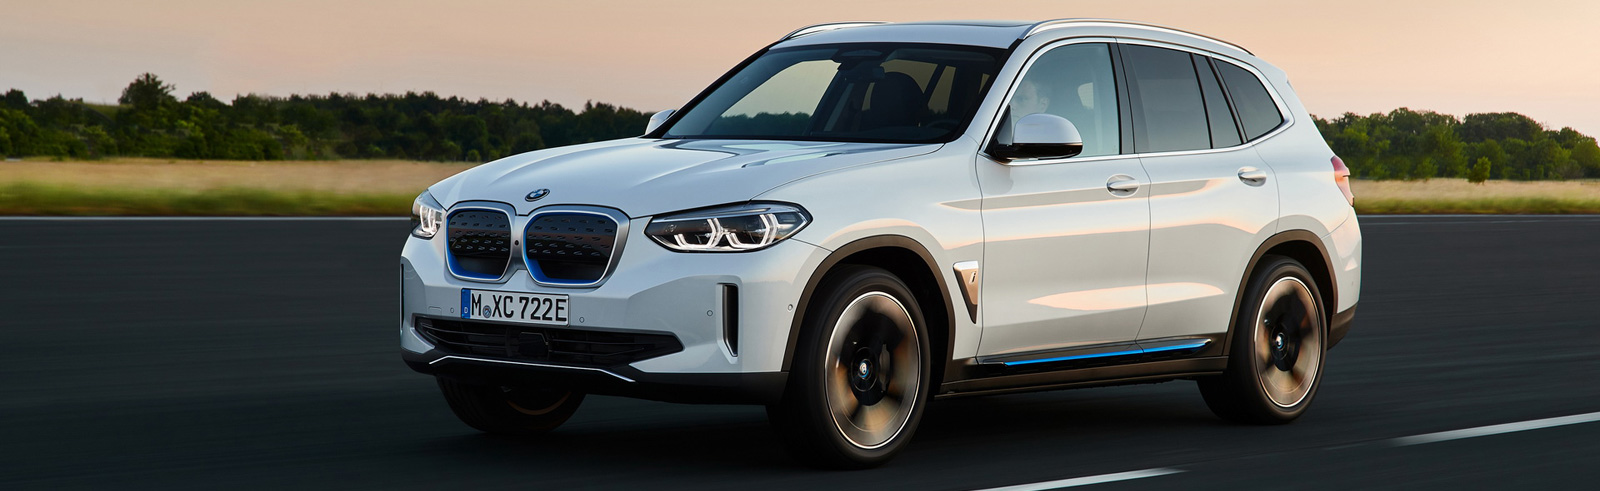 2021 BMW iX3 goes official with 460 km of WLTP range, 150 kW DC charging support